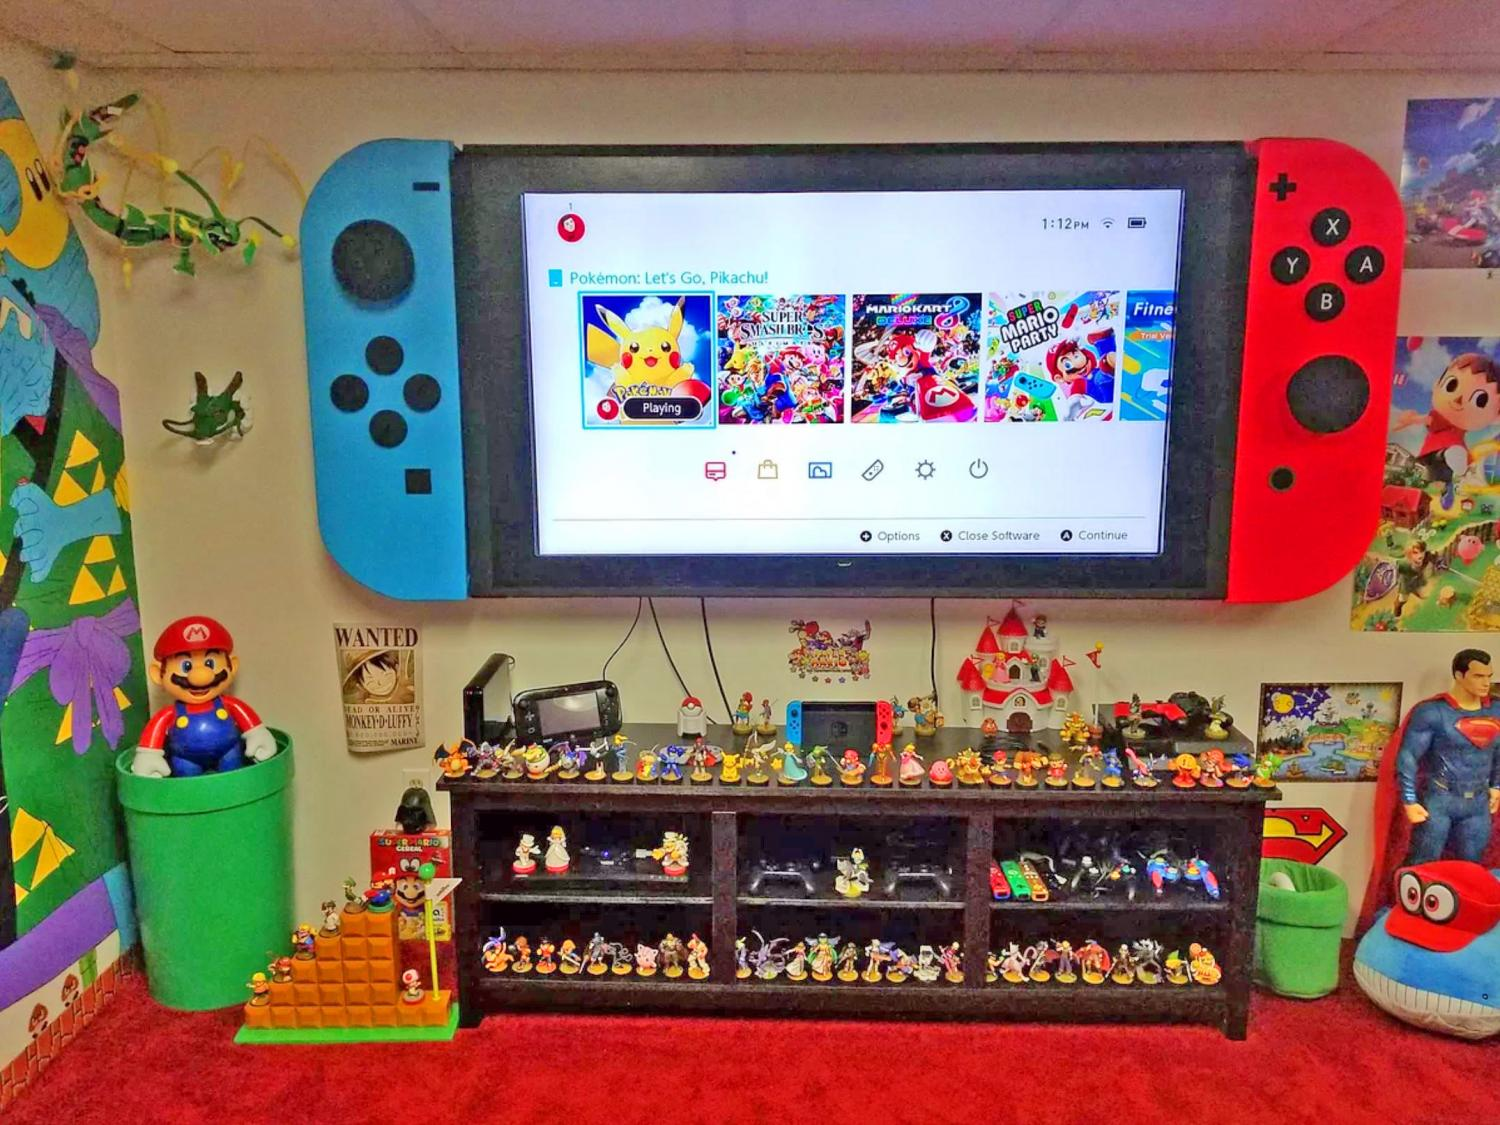 Wall-Mounted Cabinets Turn Your TV Into a Giant Nintendo Switch - Nintendo Switch TV Cabinets